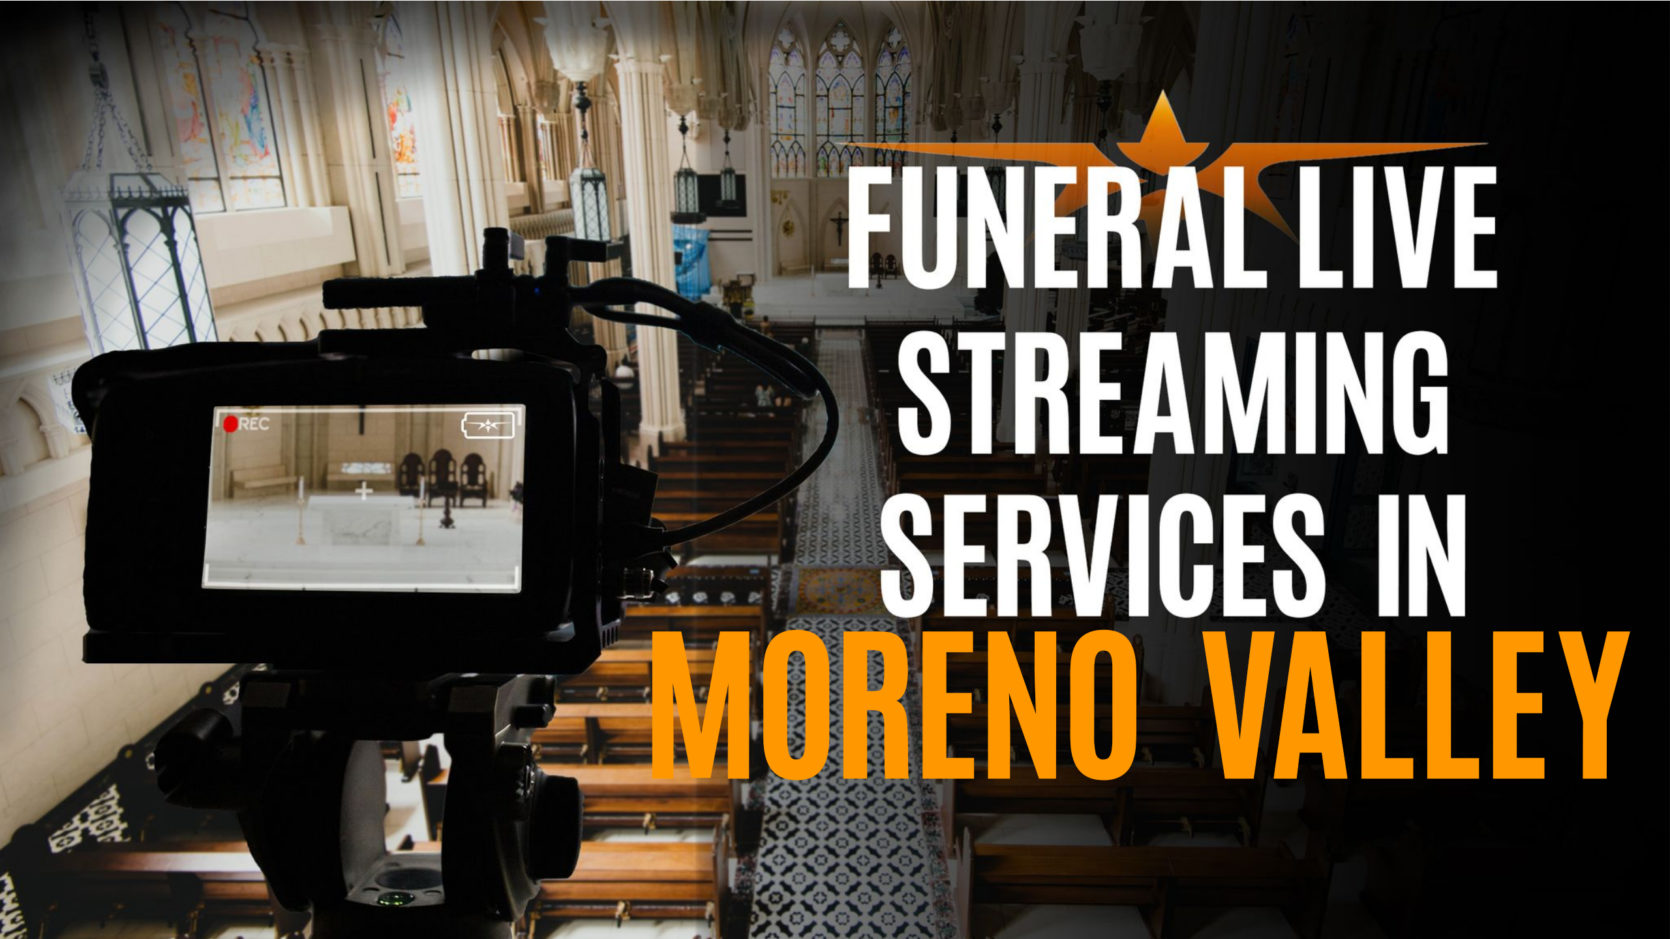 Funeral Live Streaming Services in Moreno Valley